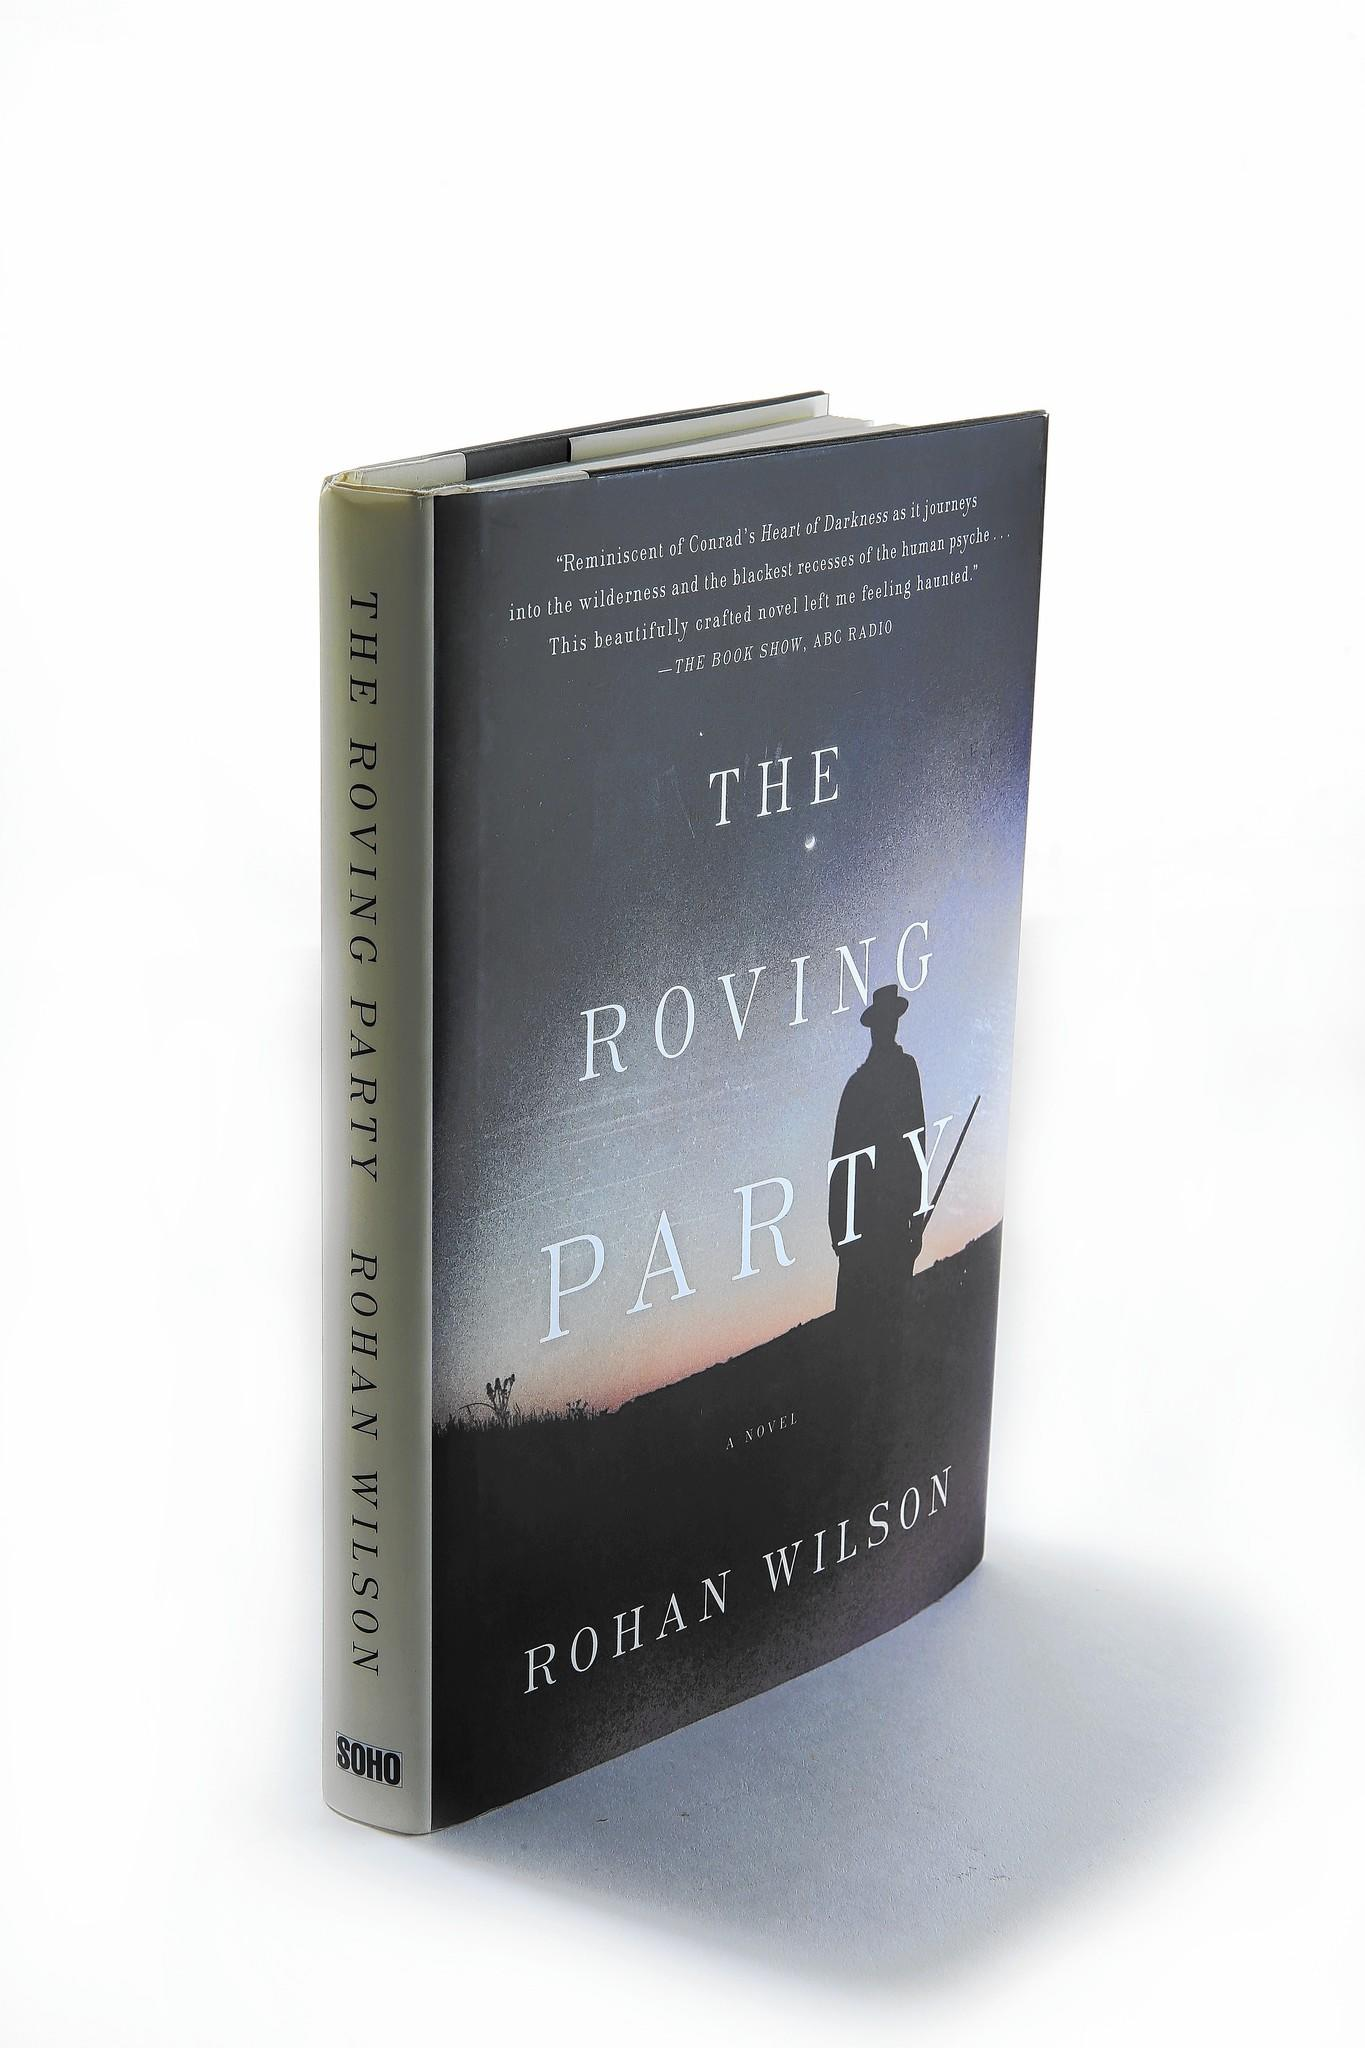 """The Roving Party"" by Rohan Wilson examines Tasmania's tumultuous beginnings and the Aboriginal culture that dominates the island."